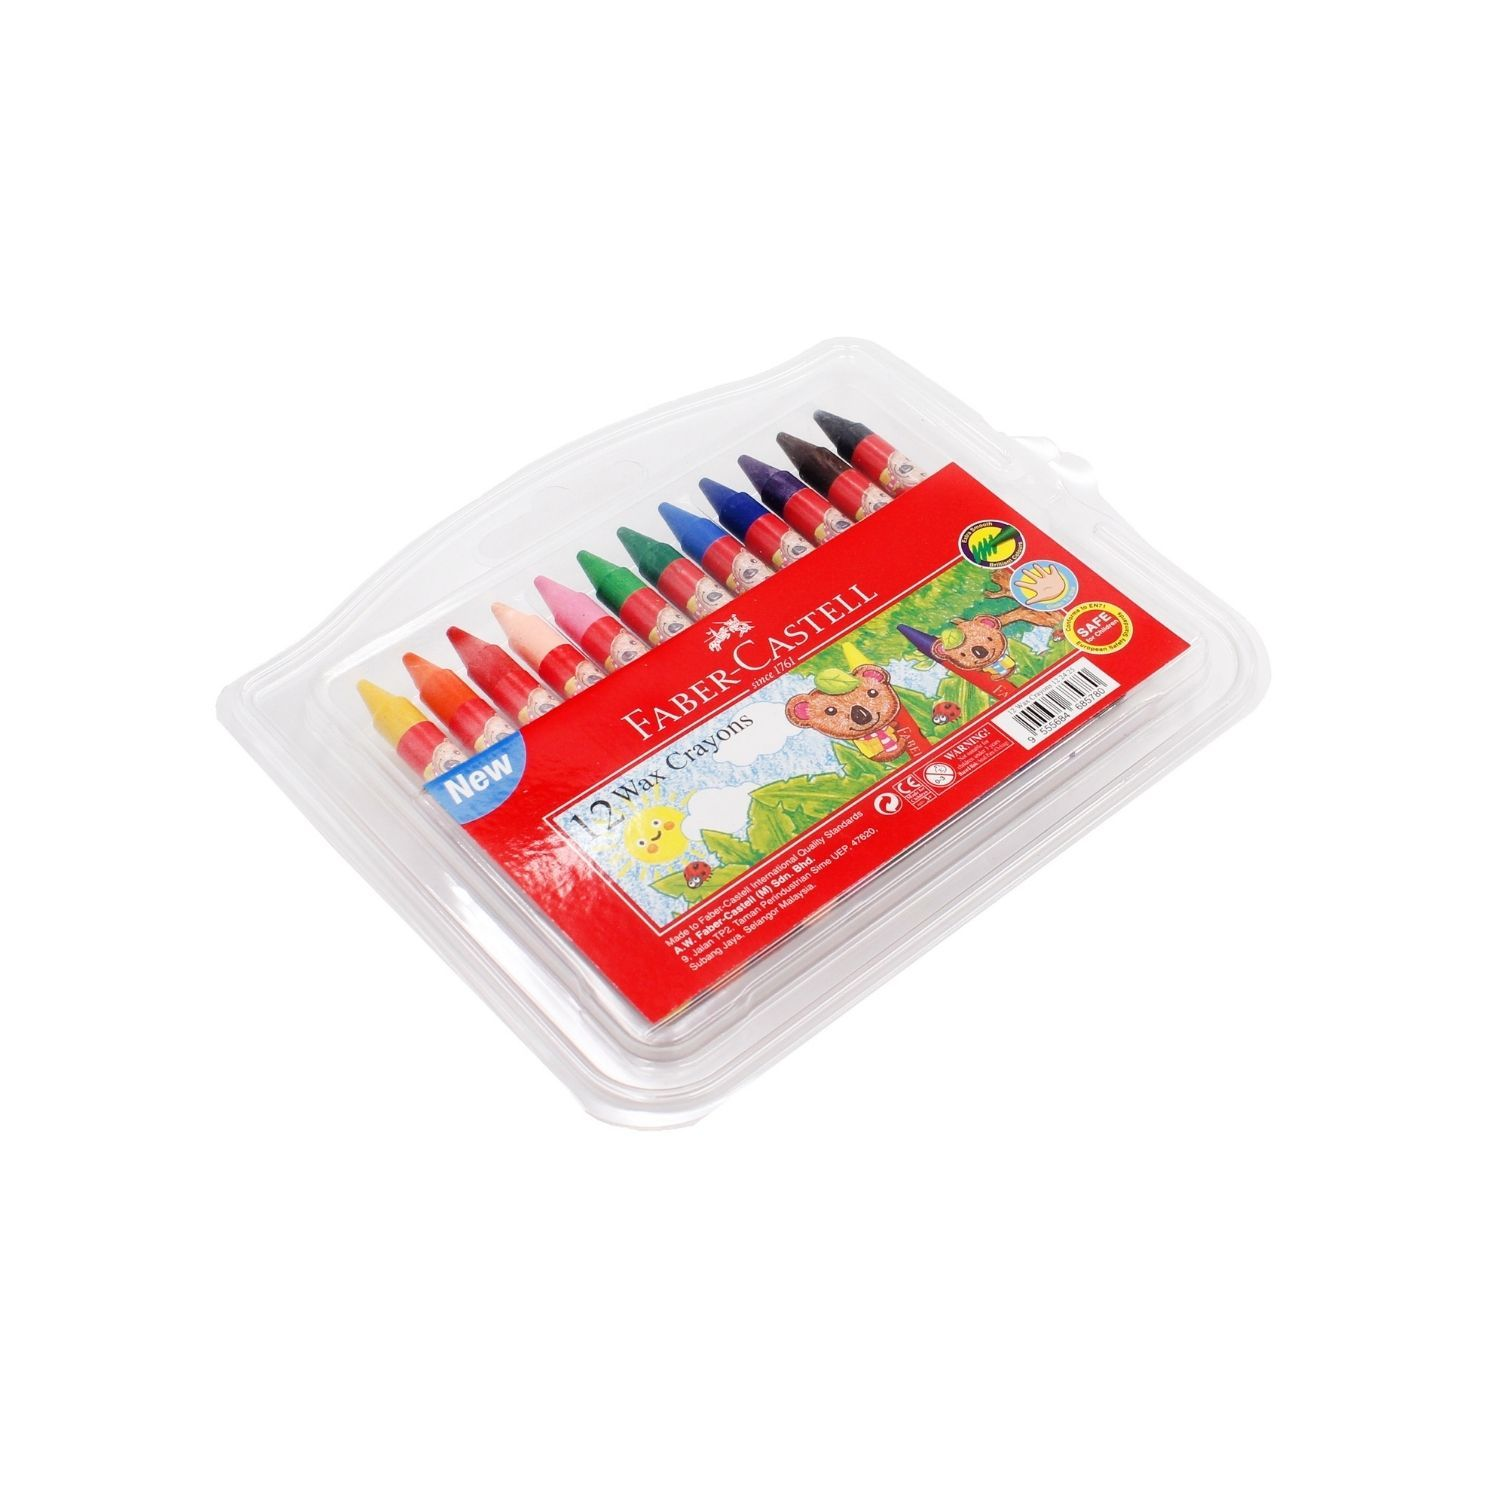 Faber-Castell Wax Crayon 12colors 122425,,.jpg